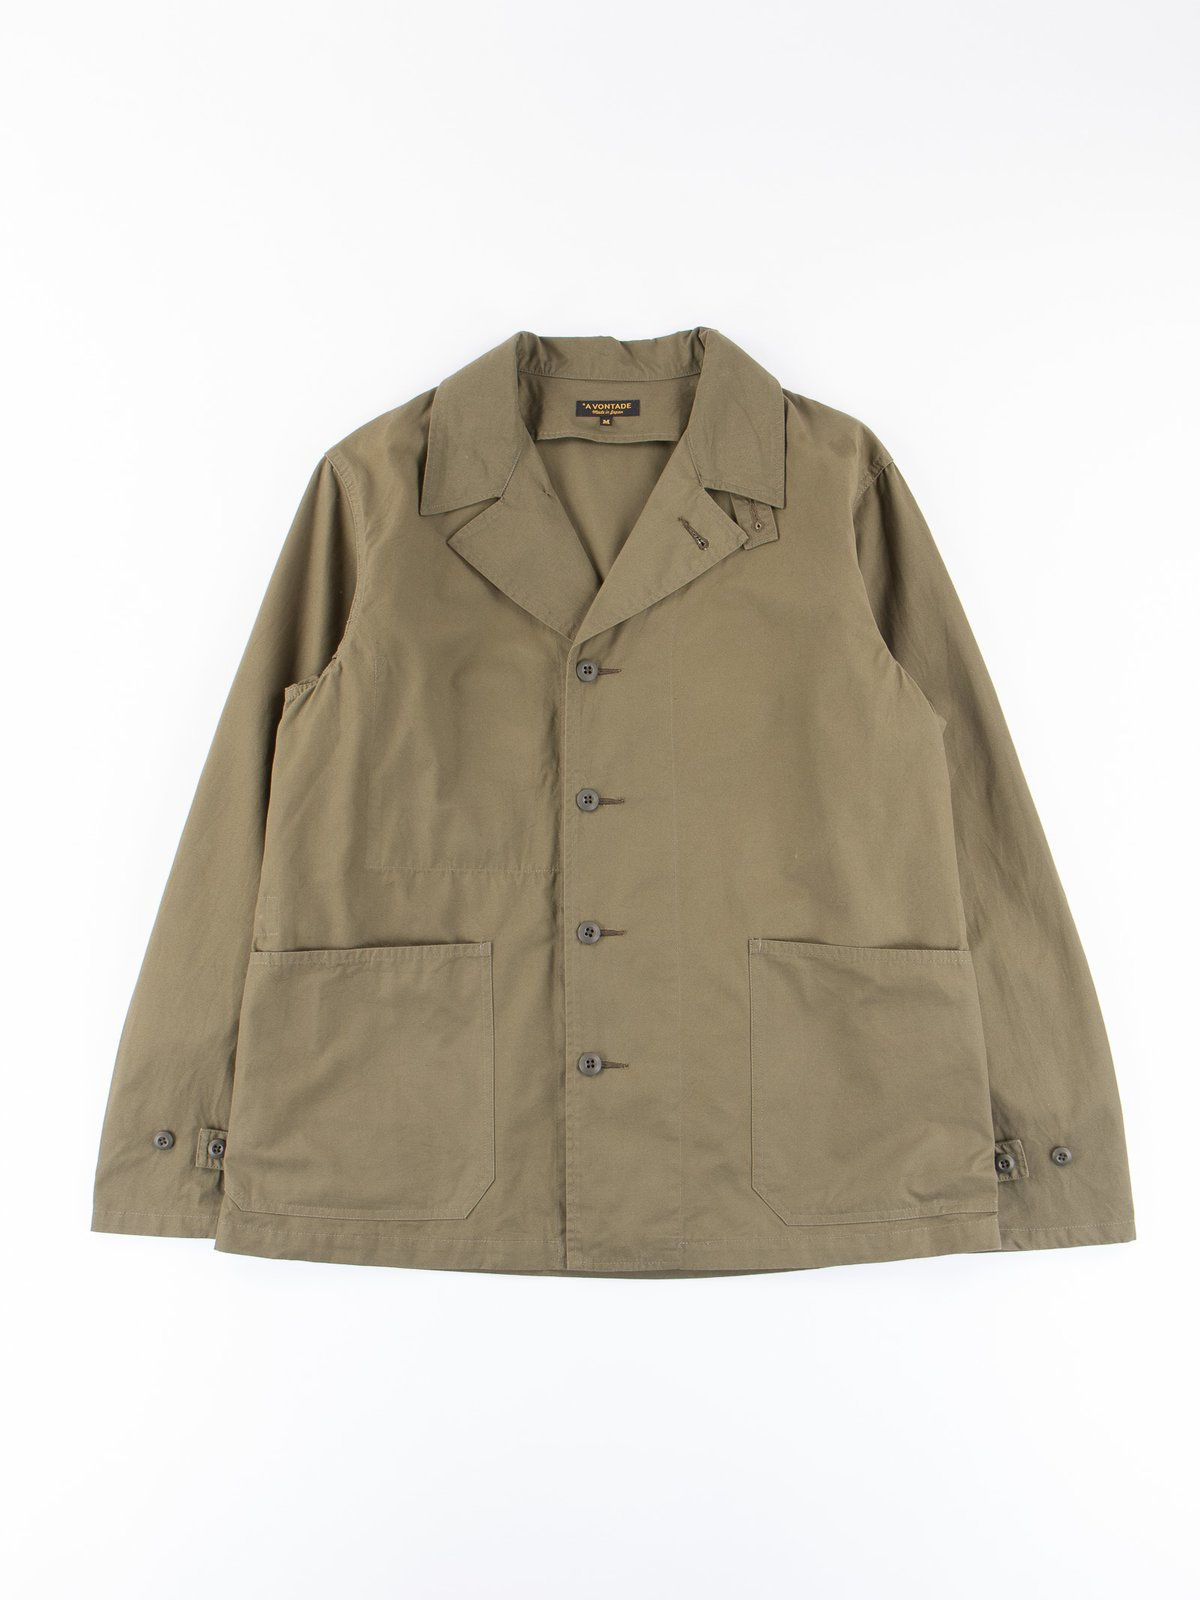 Olive Utility Coverall Jacket - Image 1